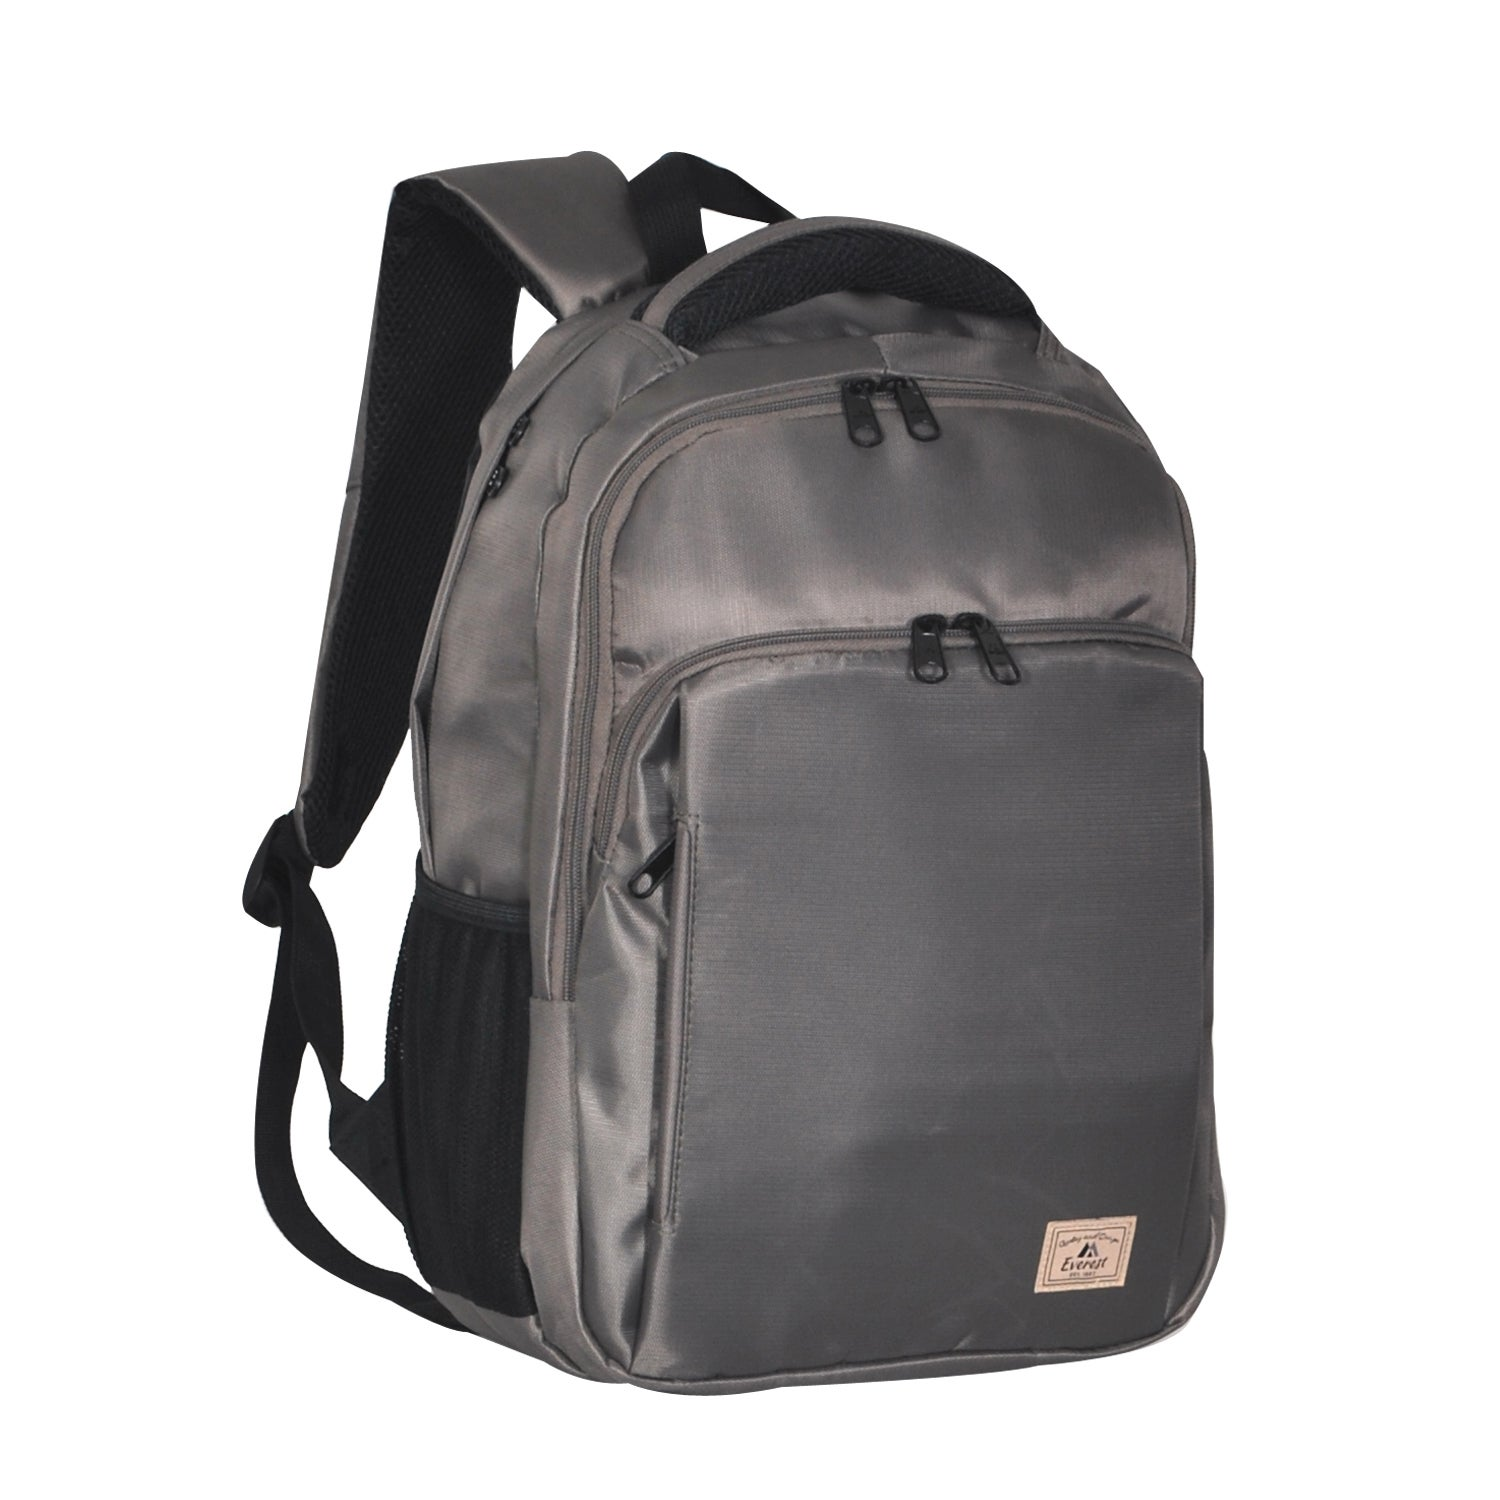 Everest 8045D 24-inch Polyester Hiking Backpack in Black